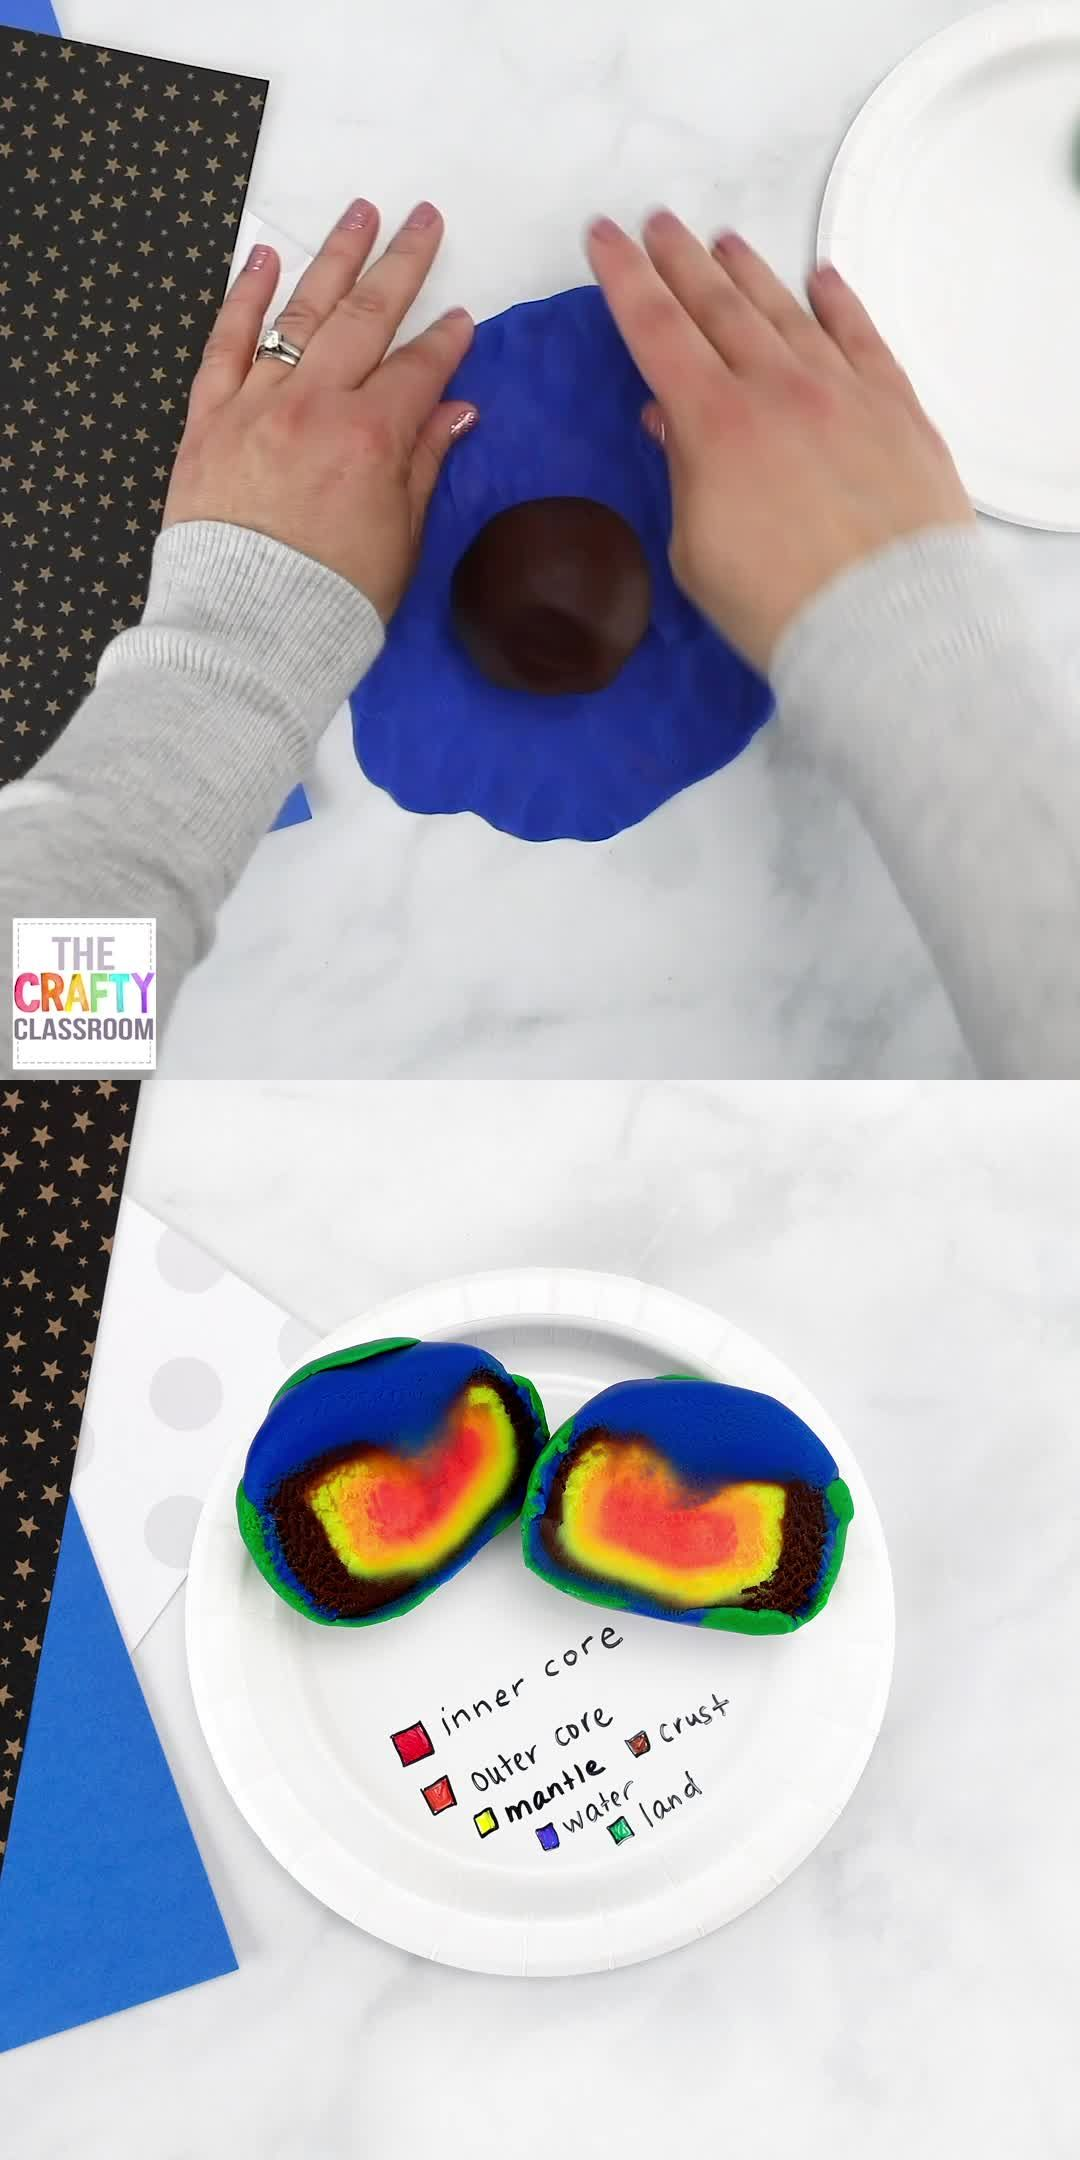 Layers Of The Earth Craft S Thecraftyclassroom